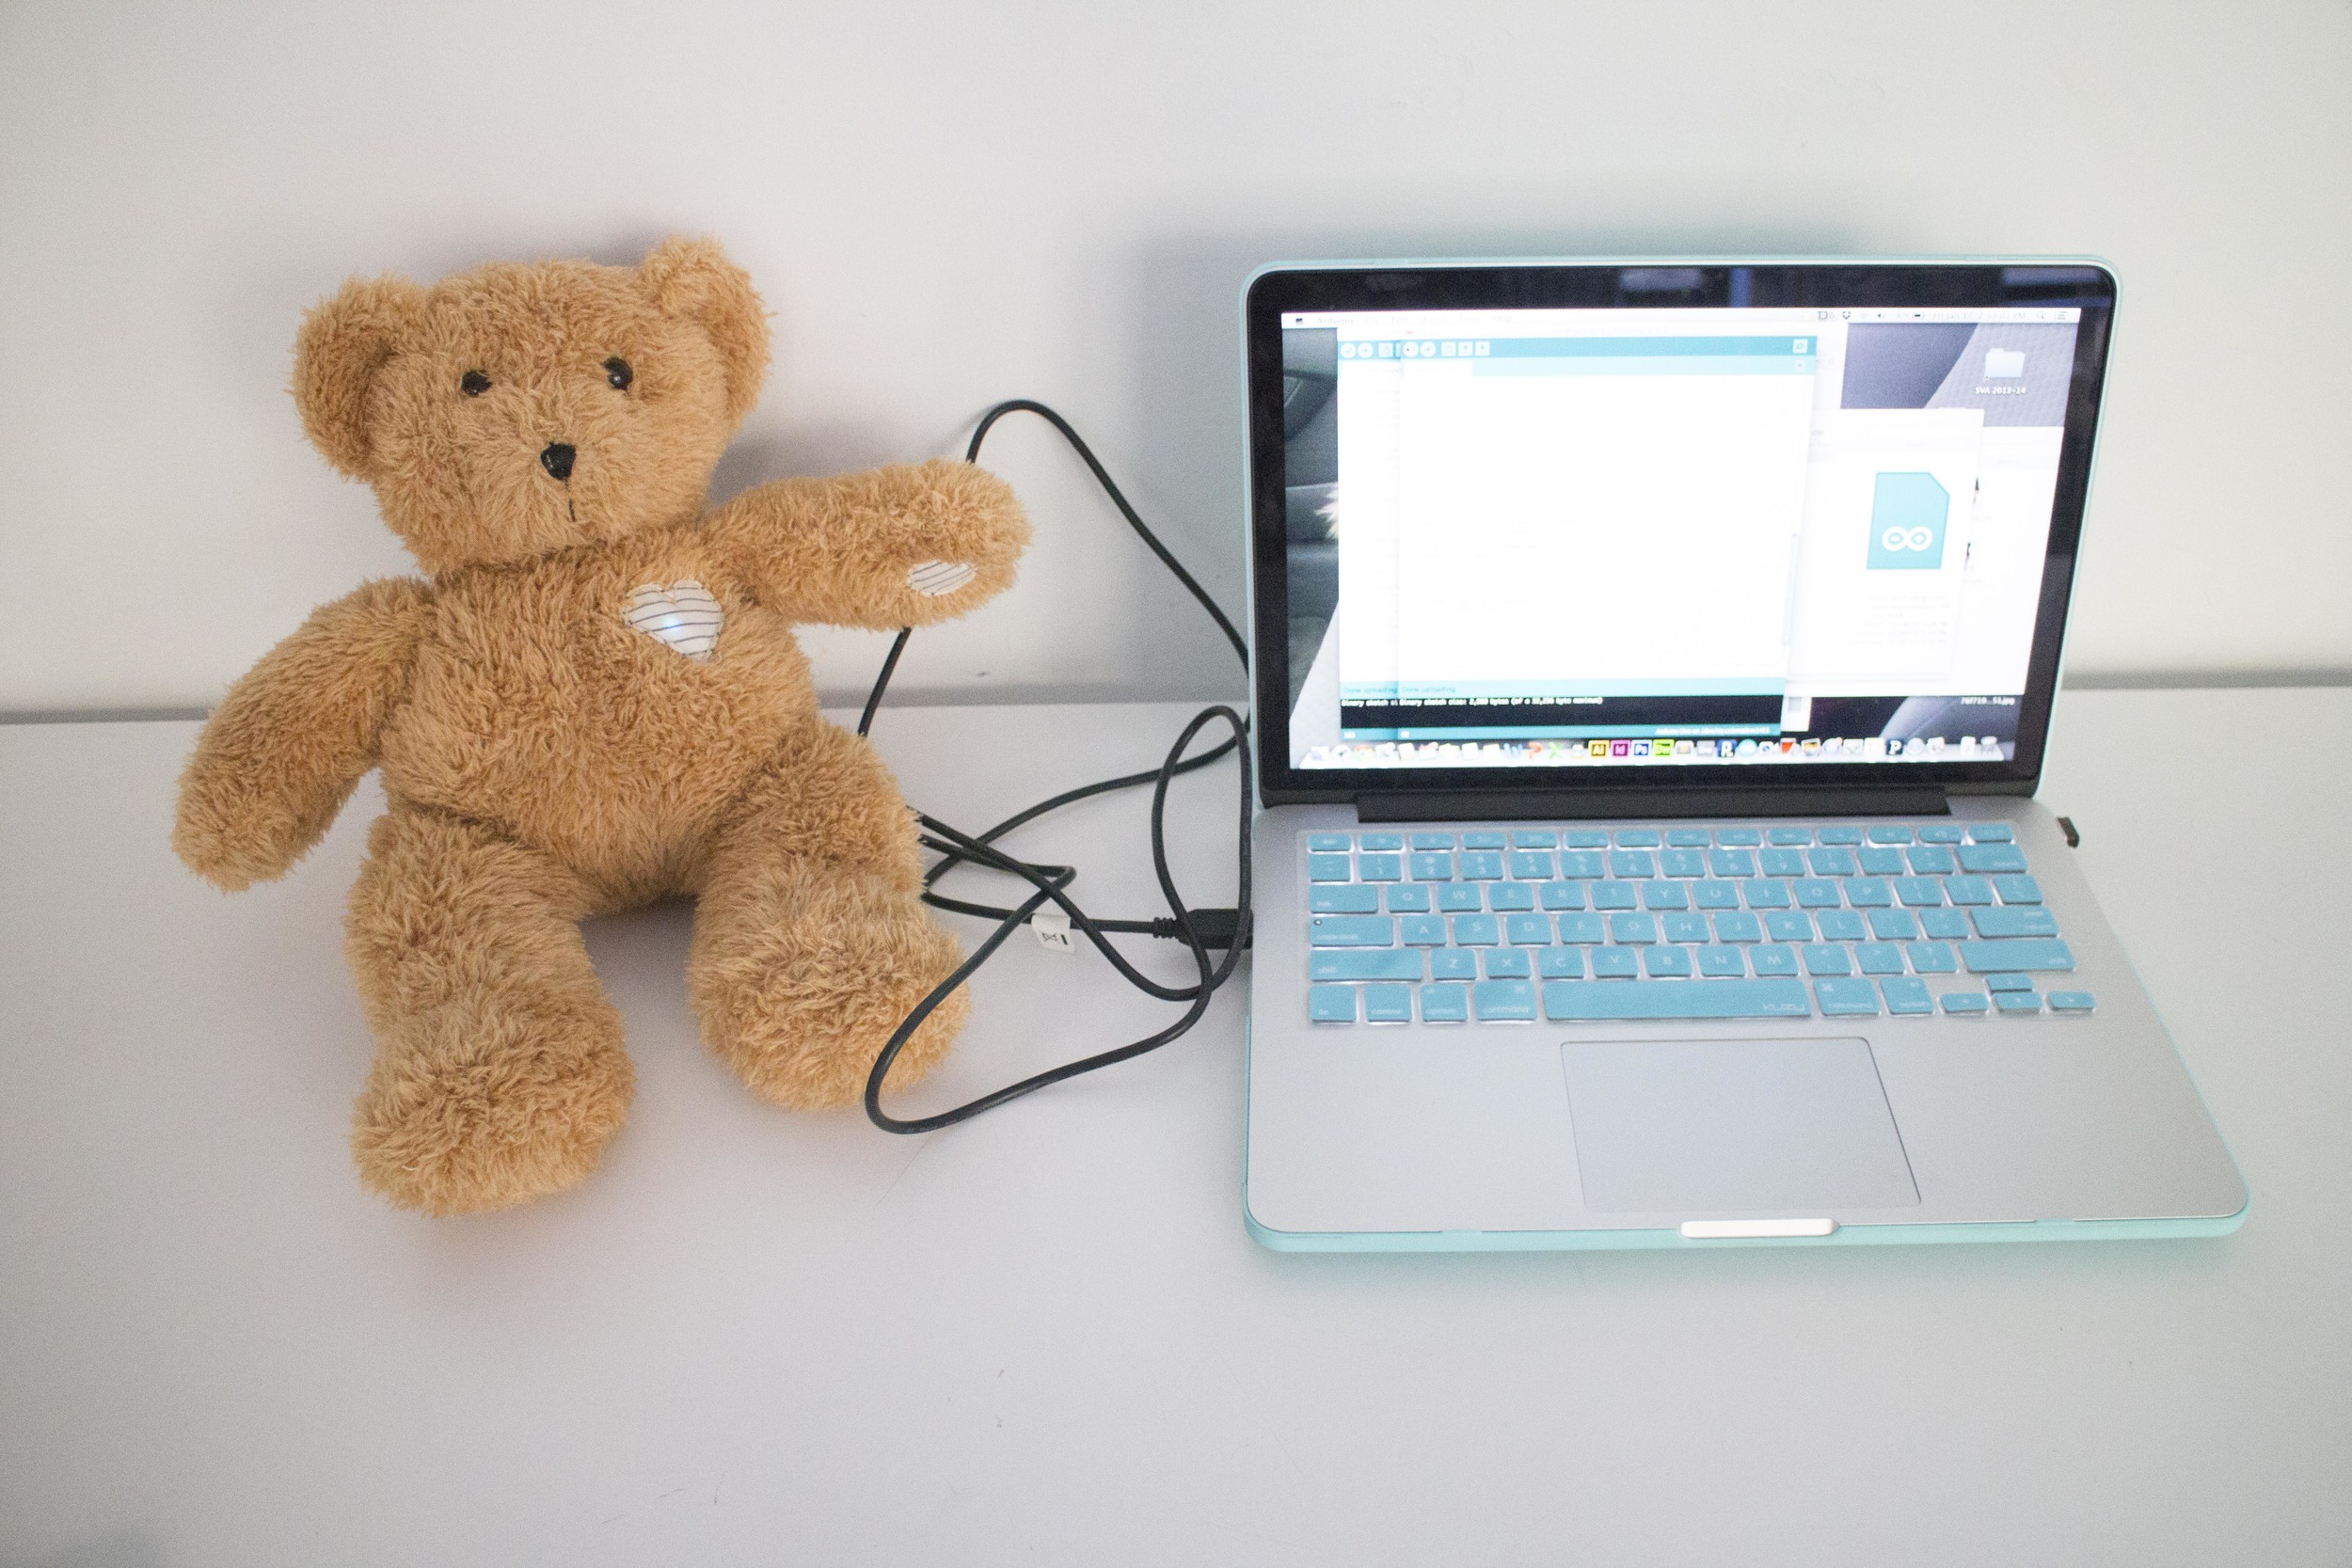 To observe and test the texting program as it runs, Beary needs to be connected to Arduino by USB cable (for now).